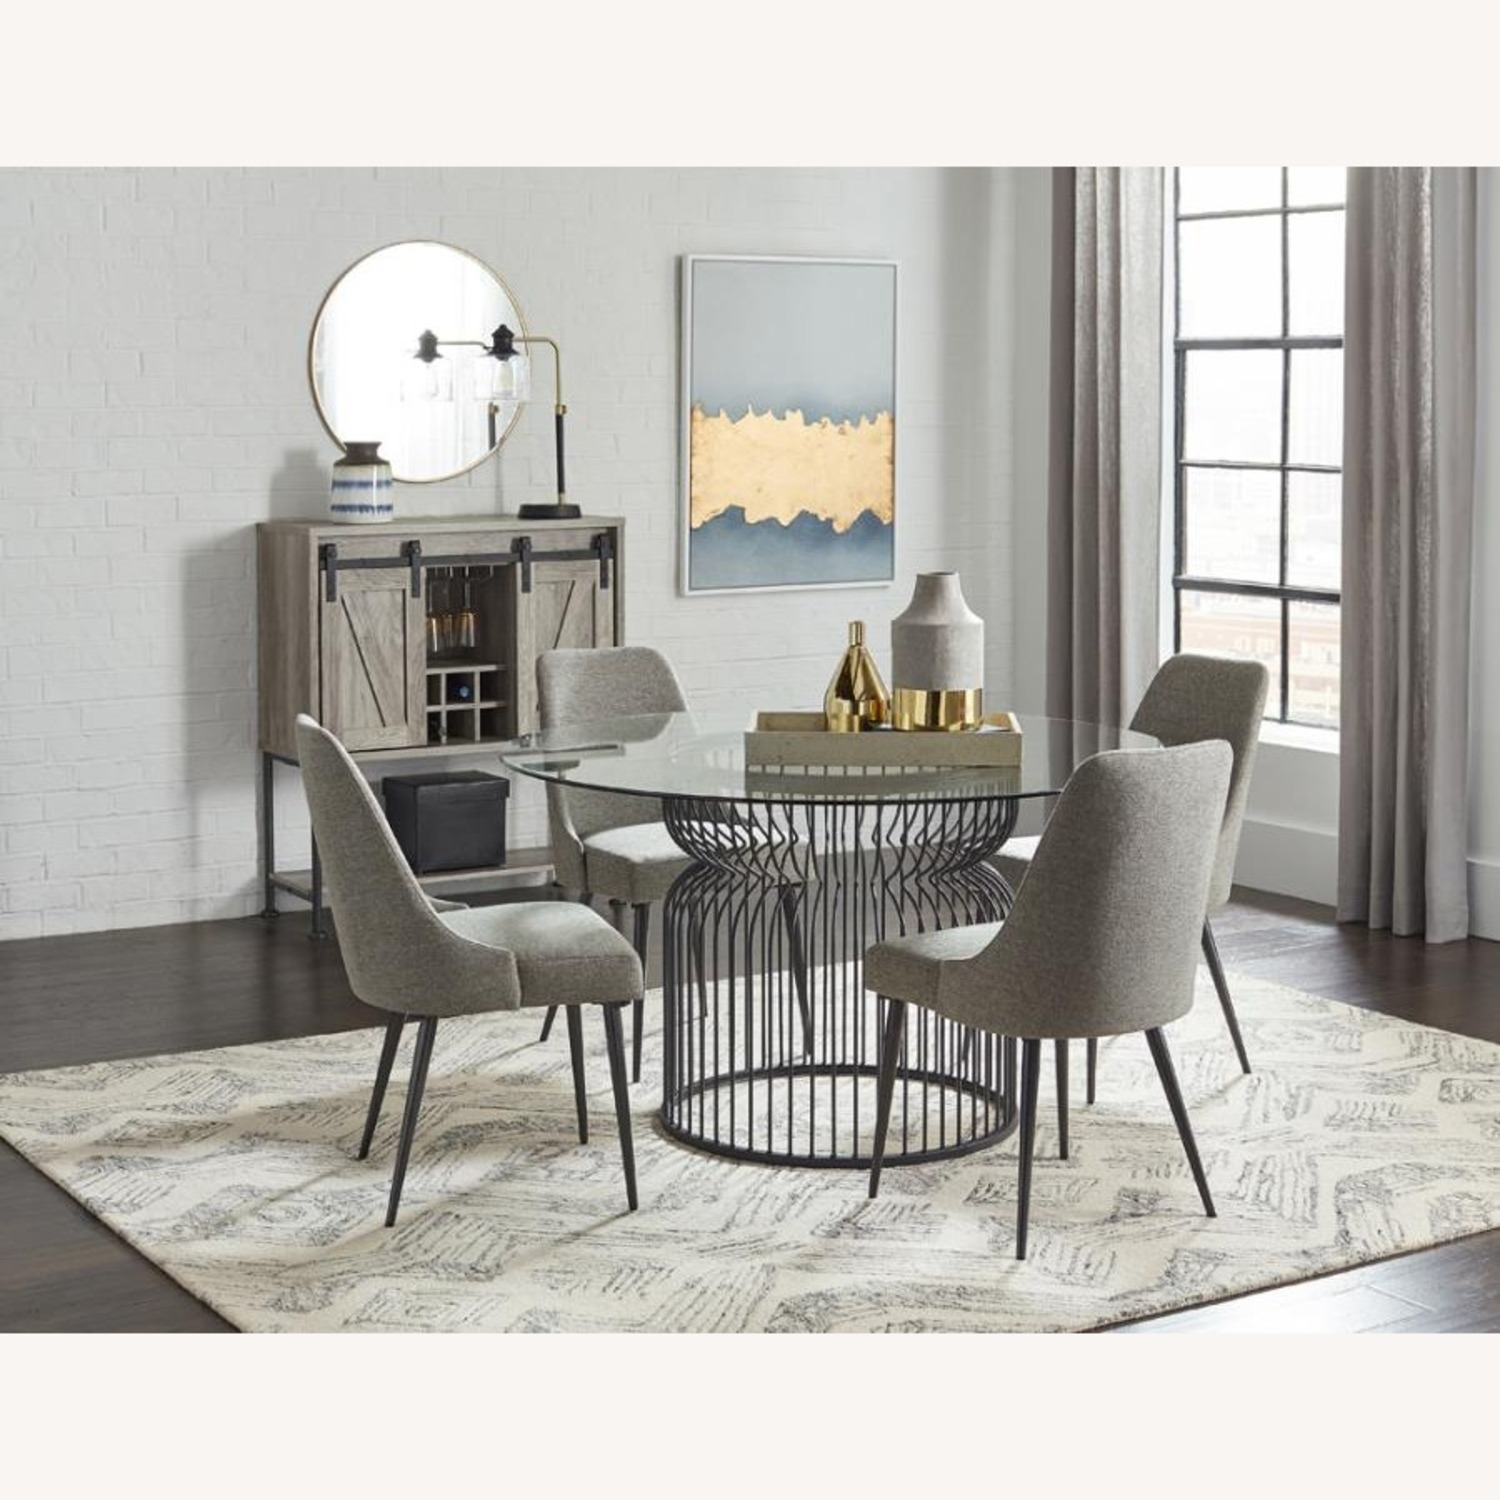 Dining Table In Gunmetal Base W/ Glass Top - image-0